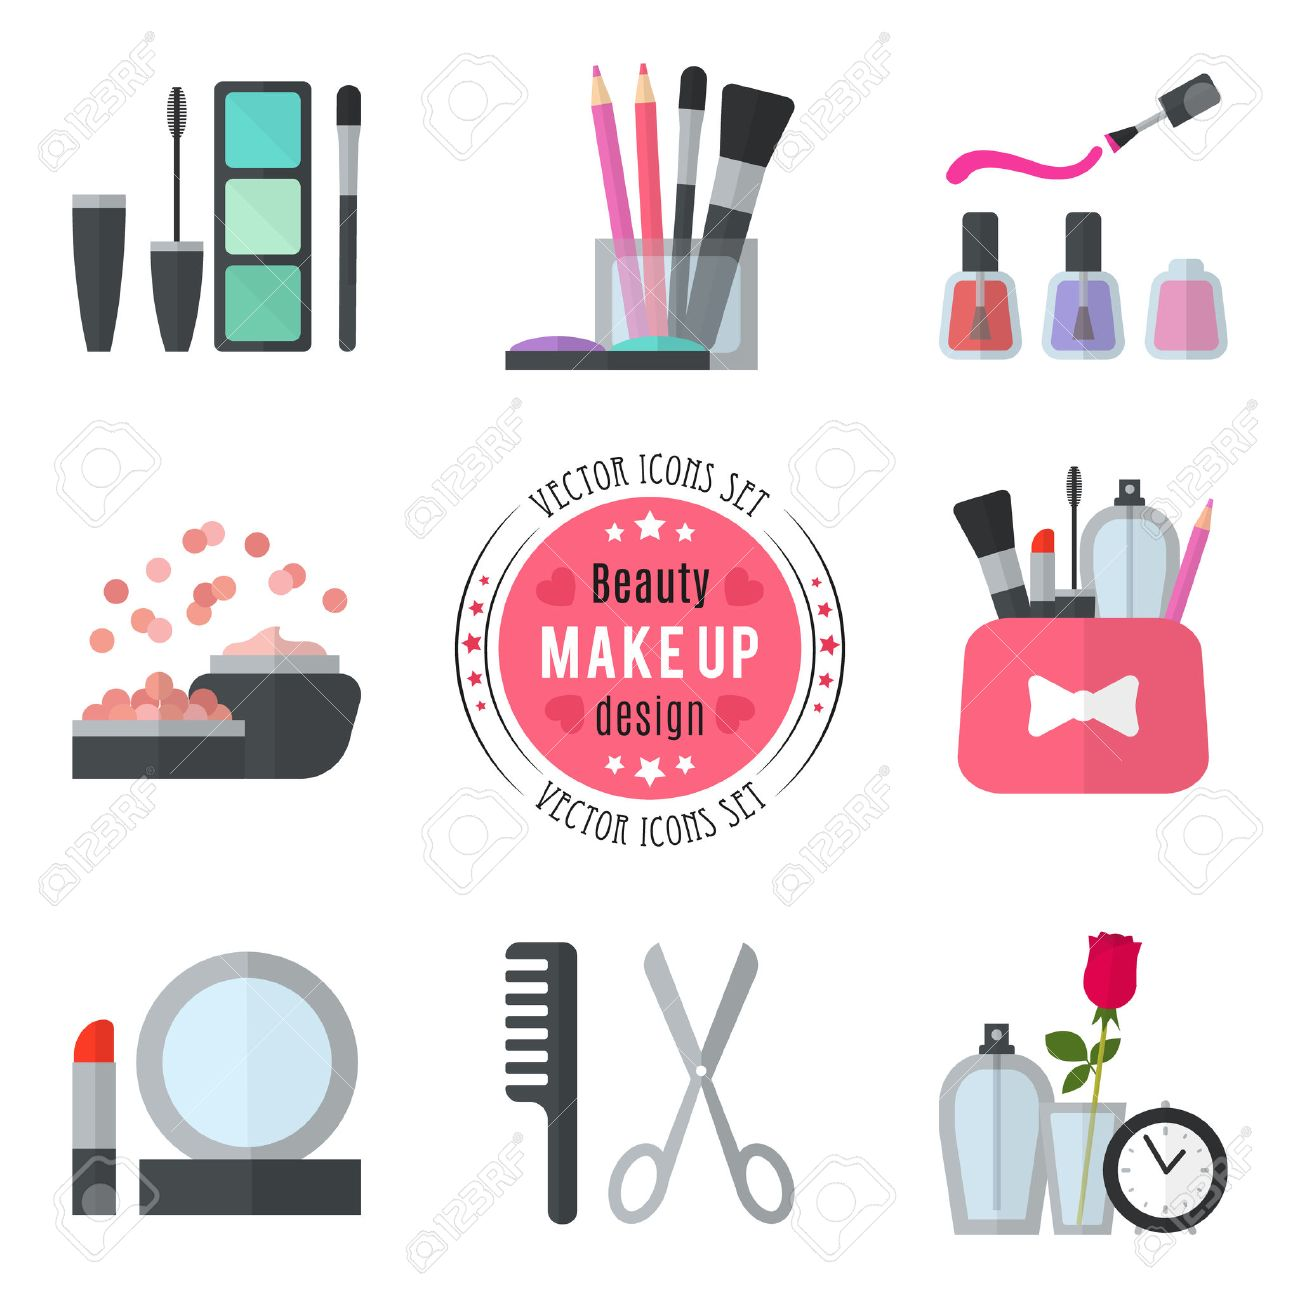 Make up flat icons. Vector illustration for cosmetic design. Beauty style isolated on white background. Make-up artist objects. Makeup accessories for pretty woman. Bright colors. - 50437677